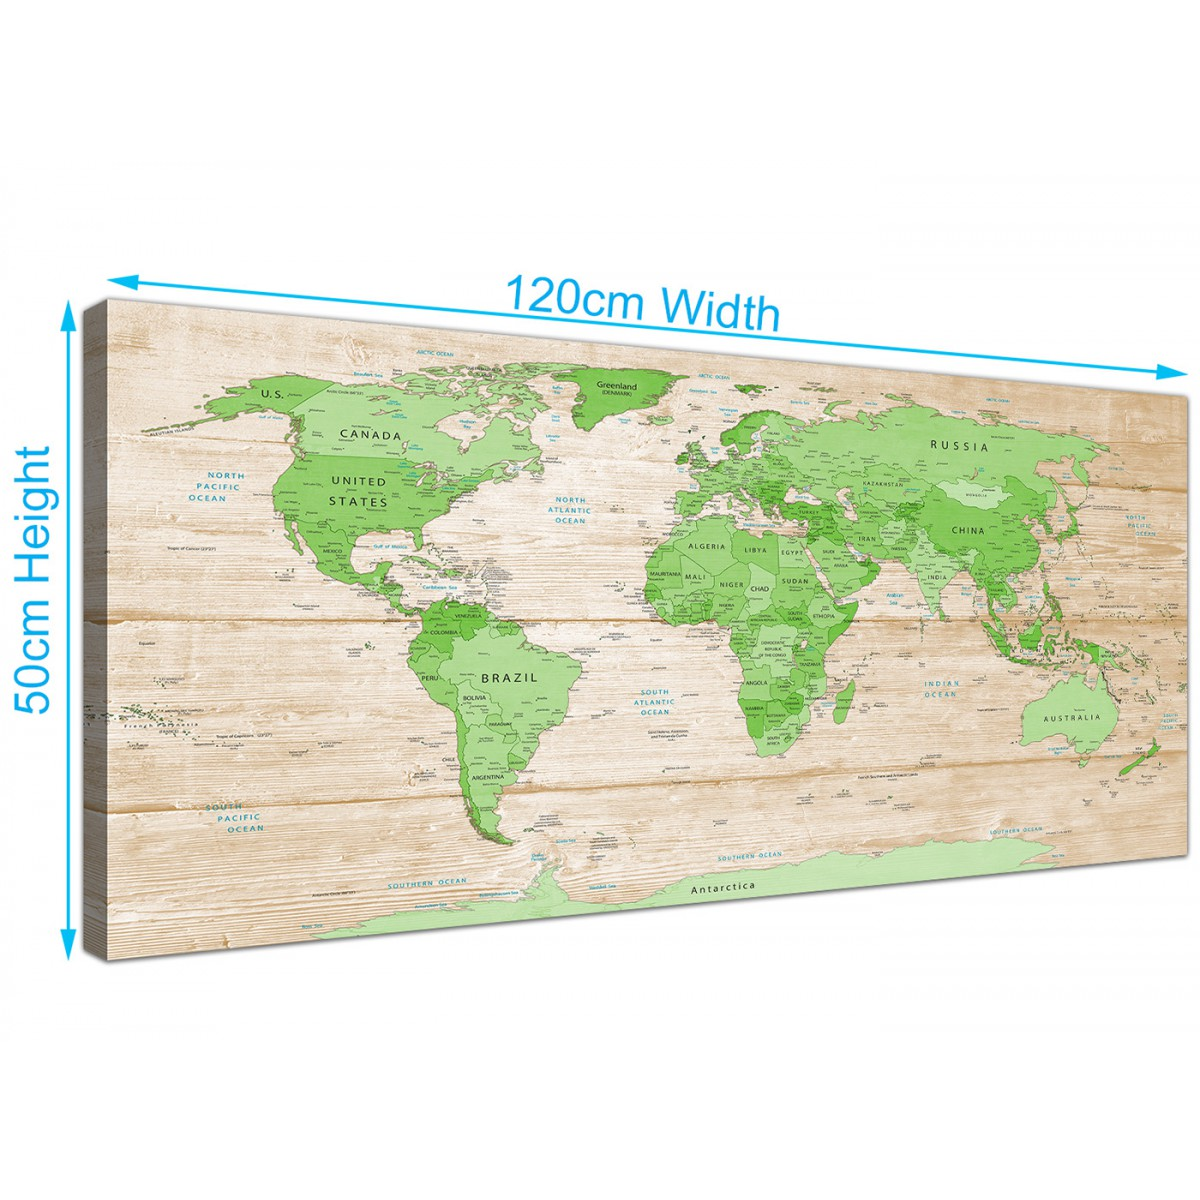 Large lime green cream world map atlas canvas wall art prints overall size 120cm x 50cm gumiabroncs Gallery